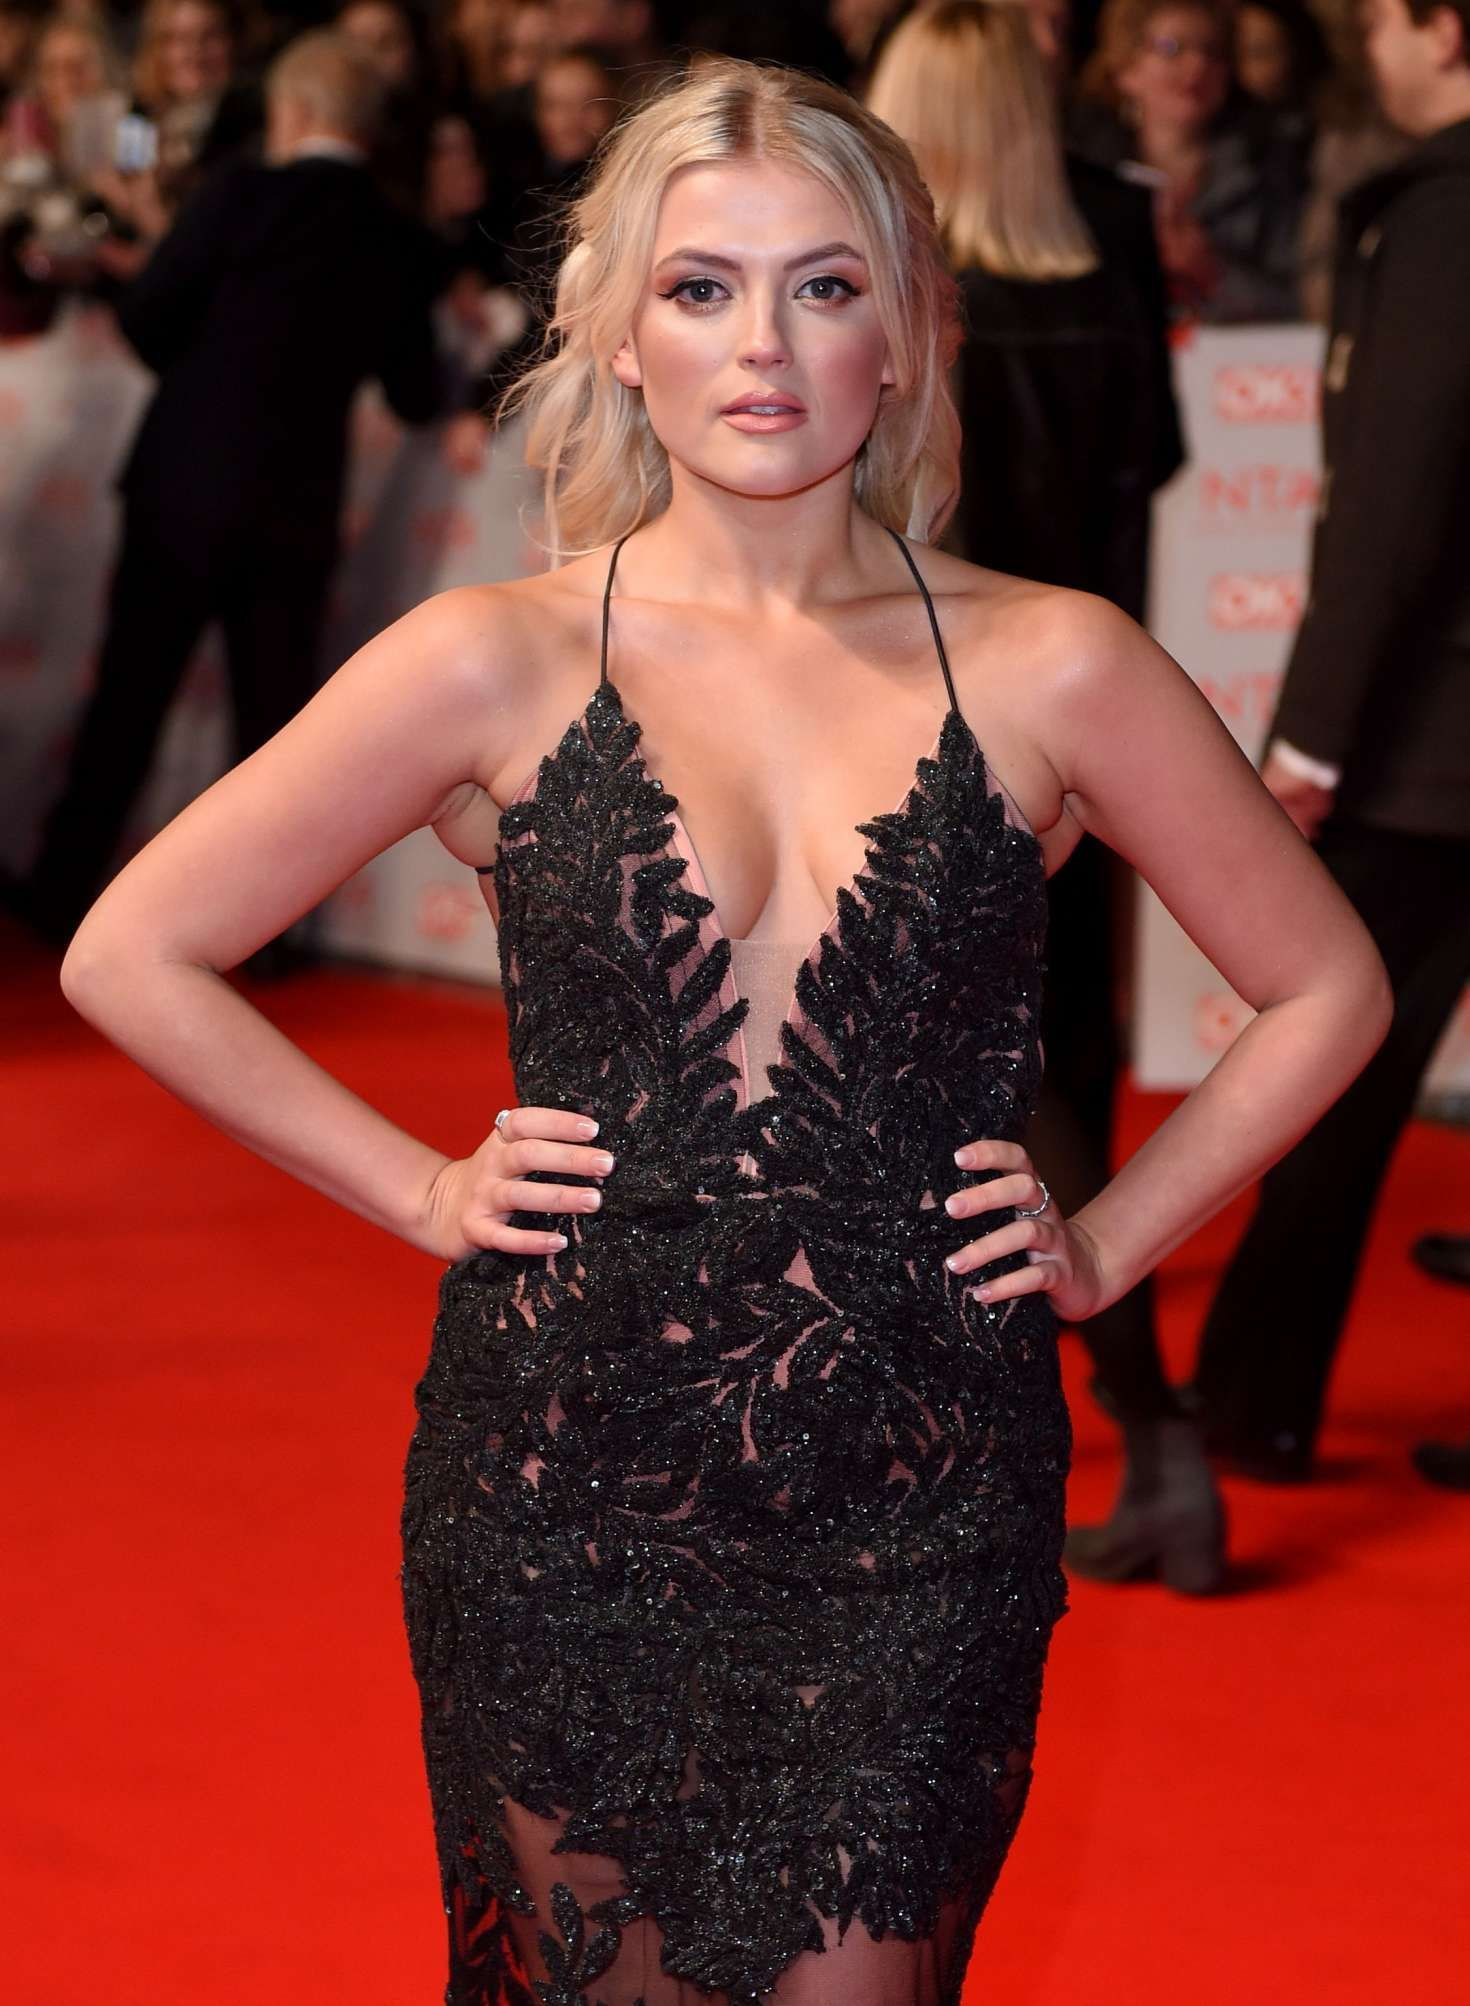 Photos Lucy Fallon naked (24 photo), Tits, Leaked, Twitter, underwear 2019